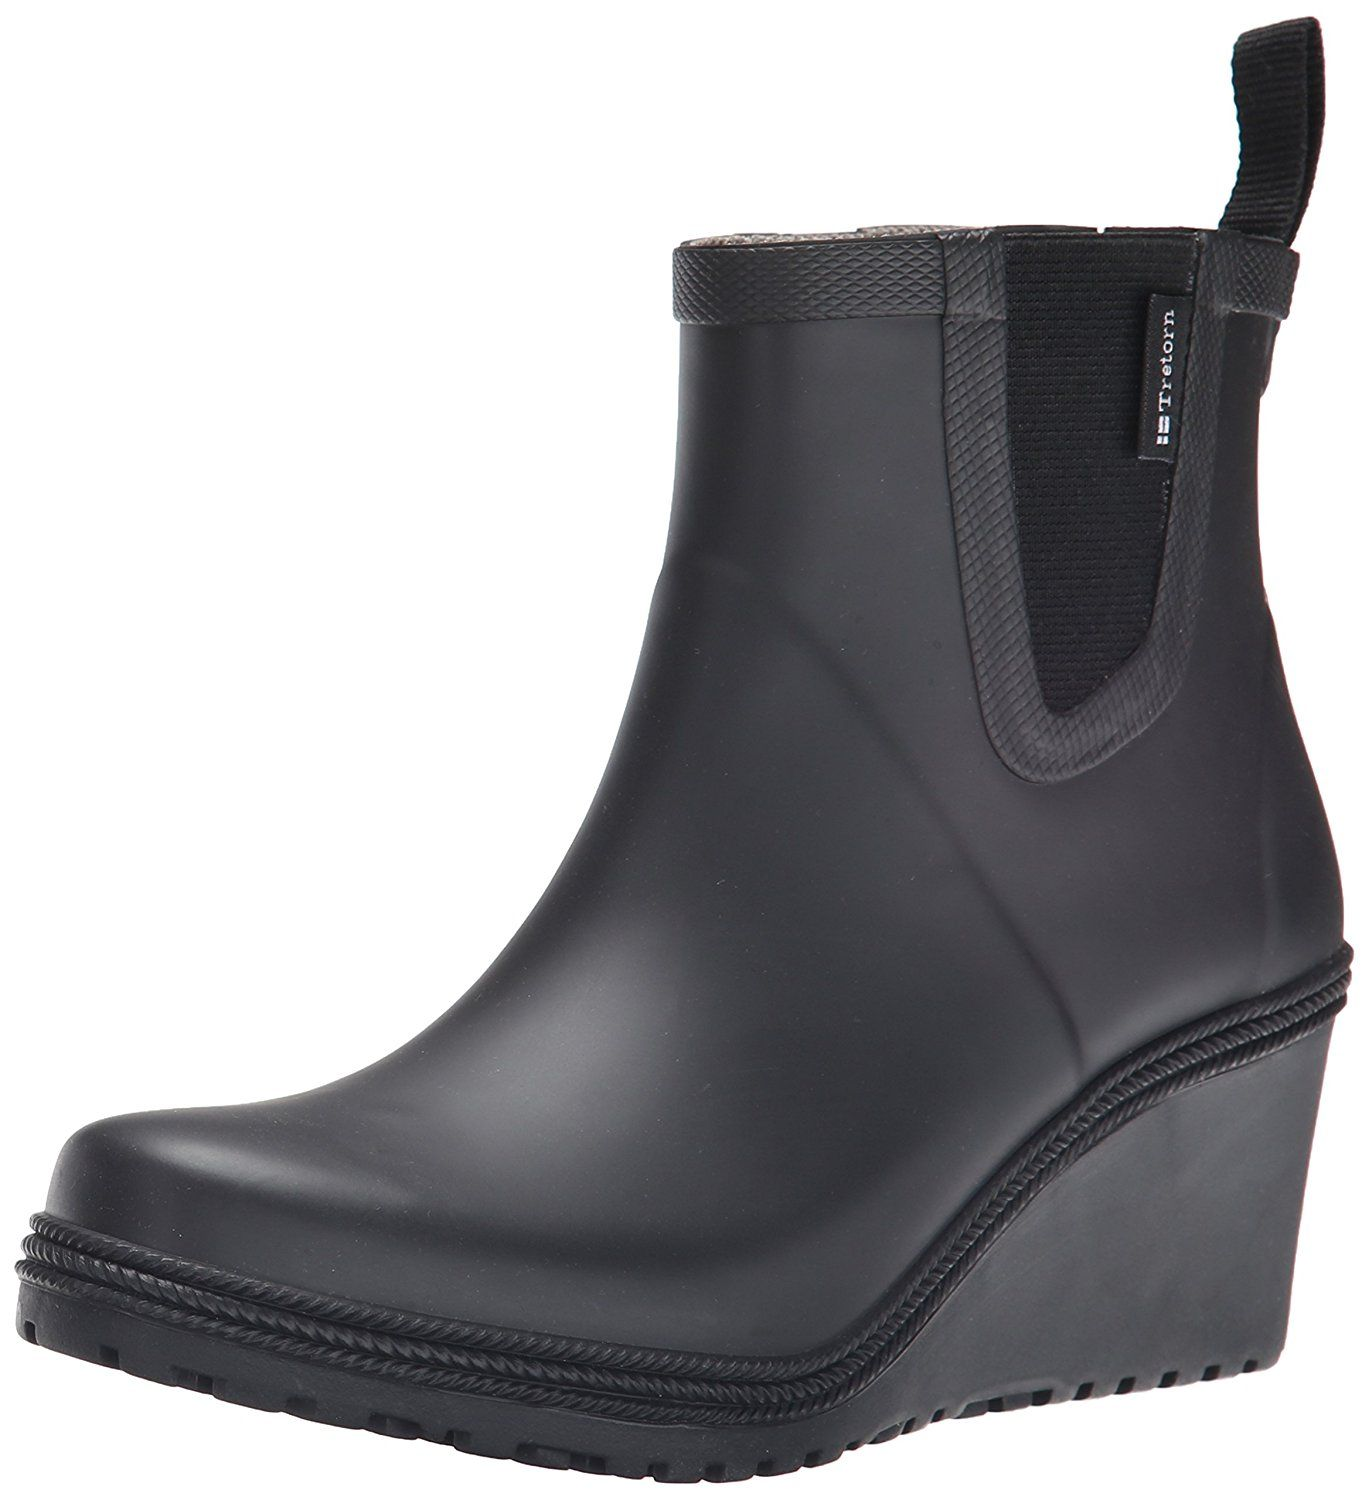 ce4012c7681 Tretorn Women s Emma Chelsea Wedge Rain Booties     Startling review  available here   Rain boots